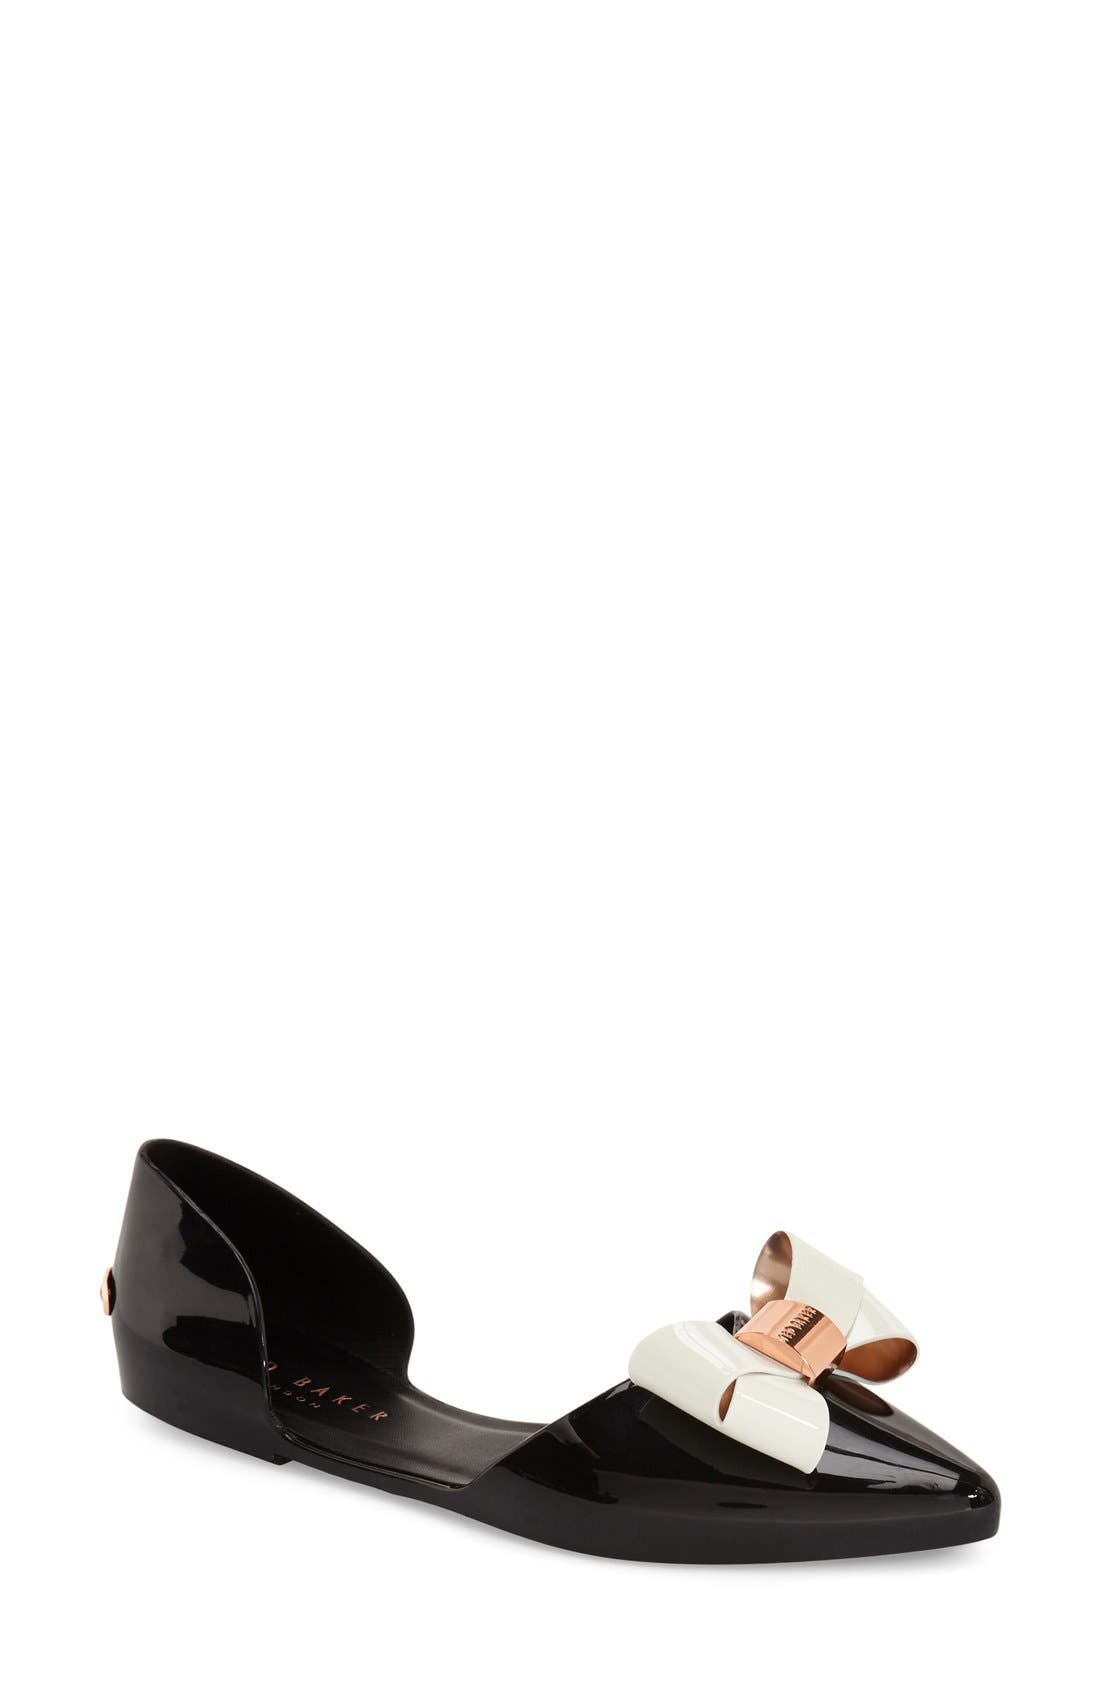 Alternate Image 1 Selected - Ted Baker London 'Tayena' d'Orsay Jelly Flat (Women)